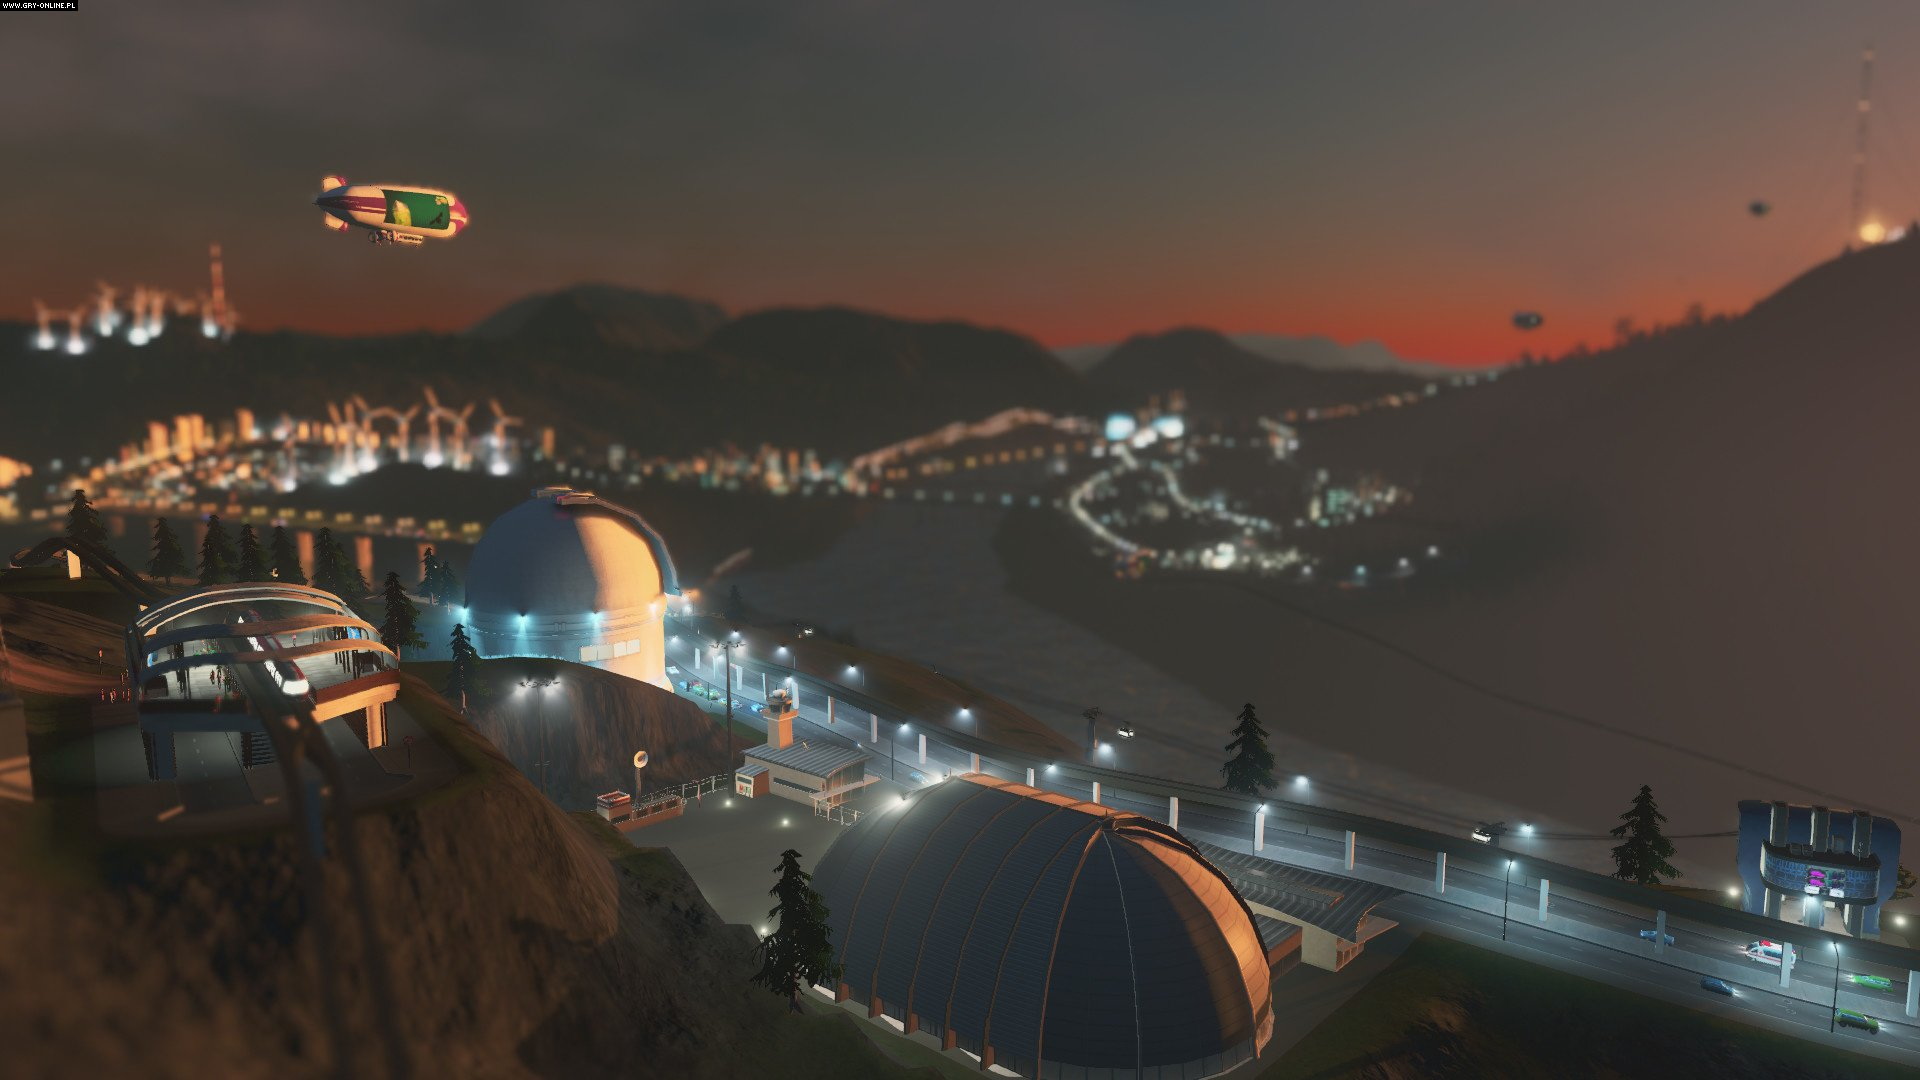 Cities: Skylines - Mass Transit PC Games Image 4/11, Colossal Order, Paradox Interactive